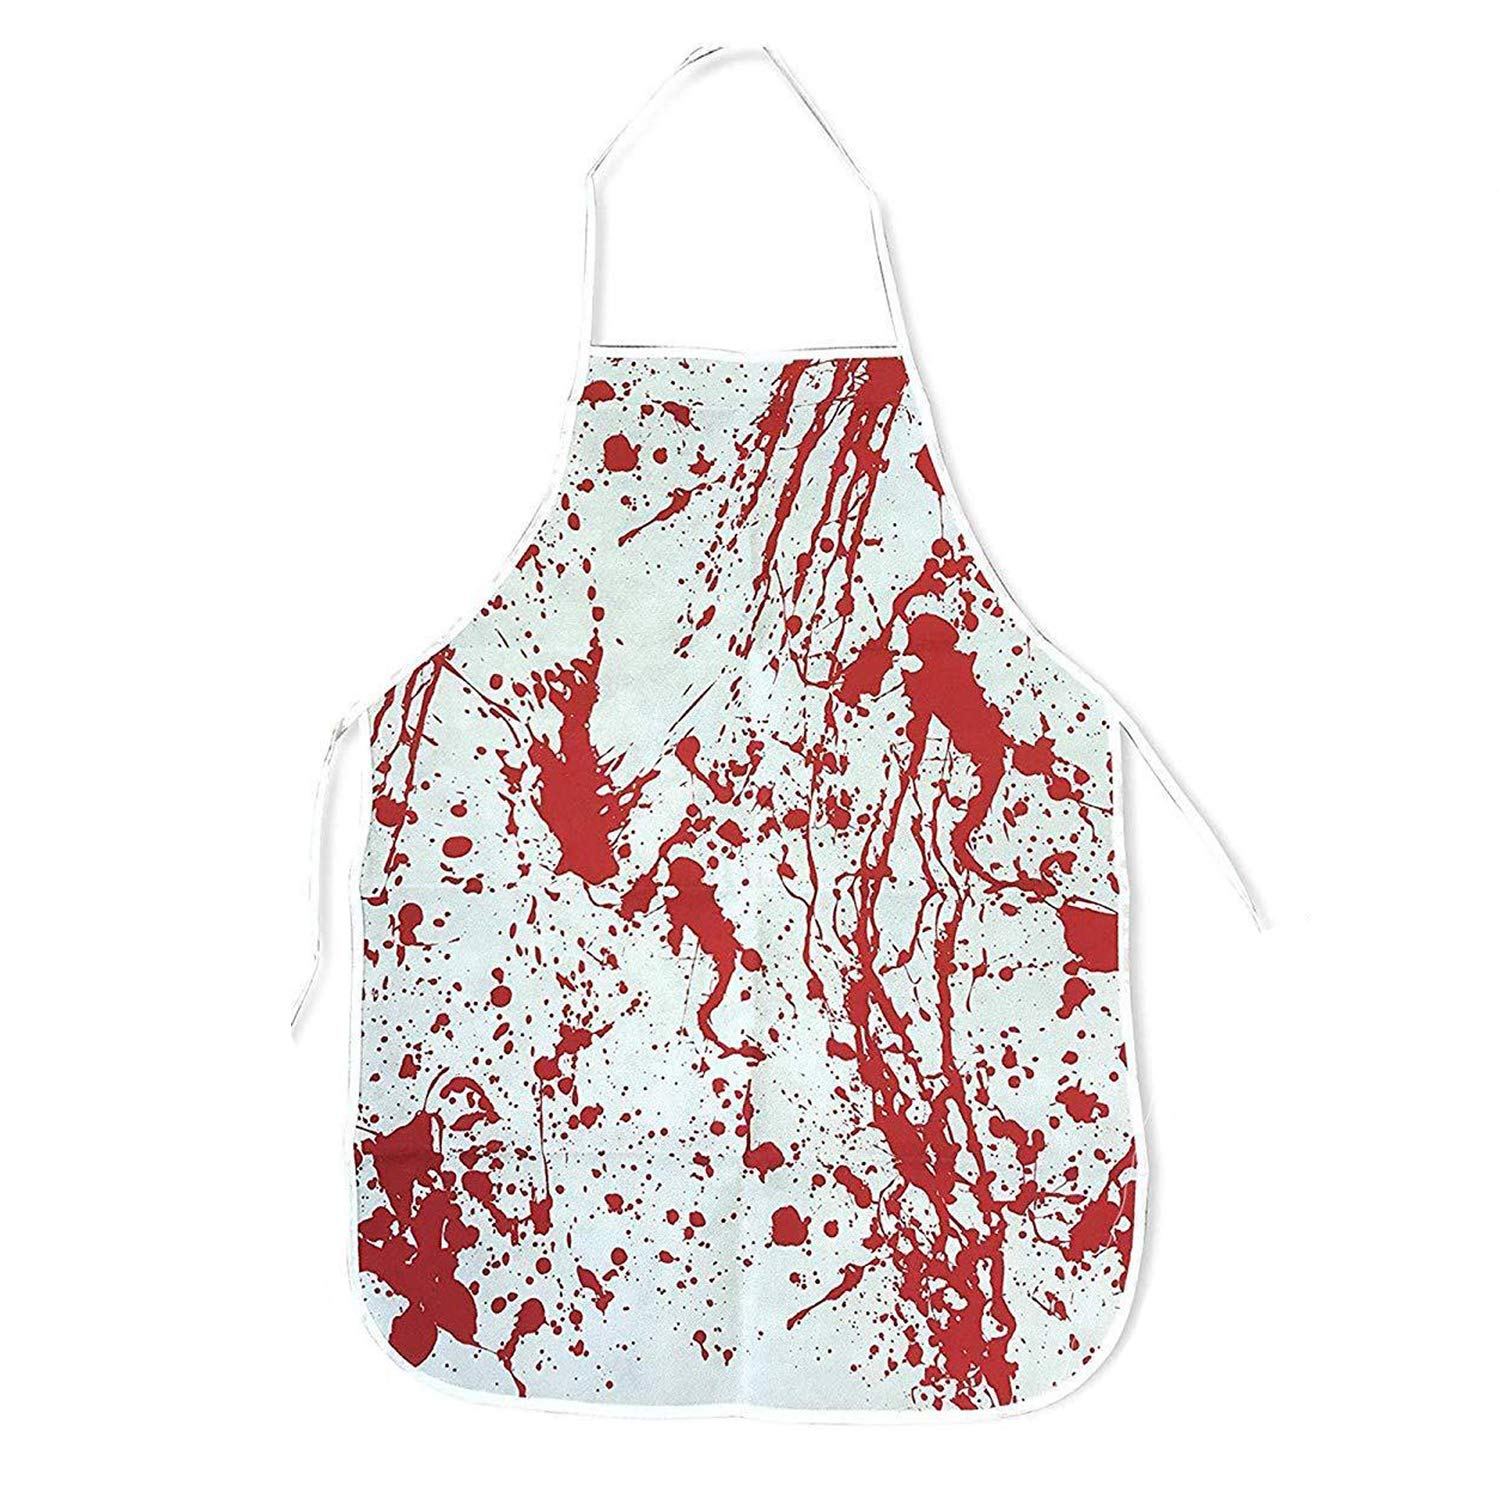 The Twiddlers Halloween Bloody Apron – Realistic Blood Stained Kitchen Apron – Perfect Costume or Accessory for Fancy Dress Party